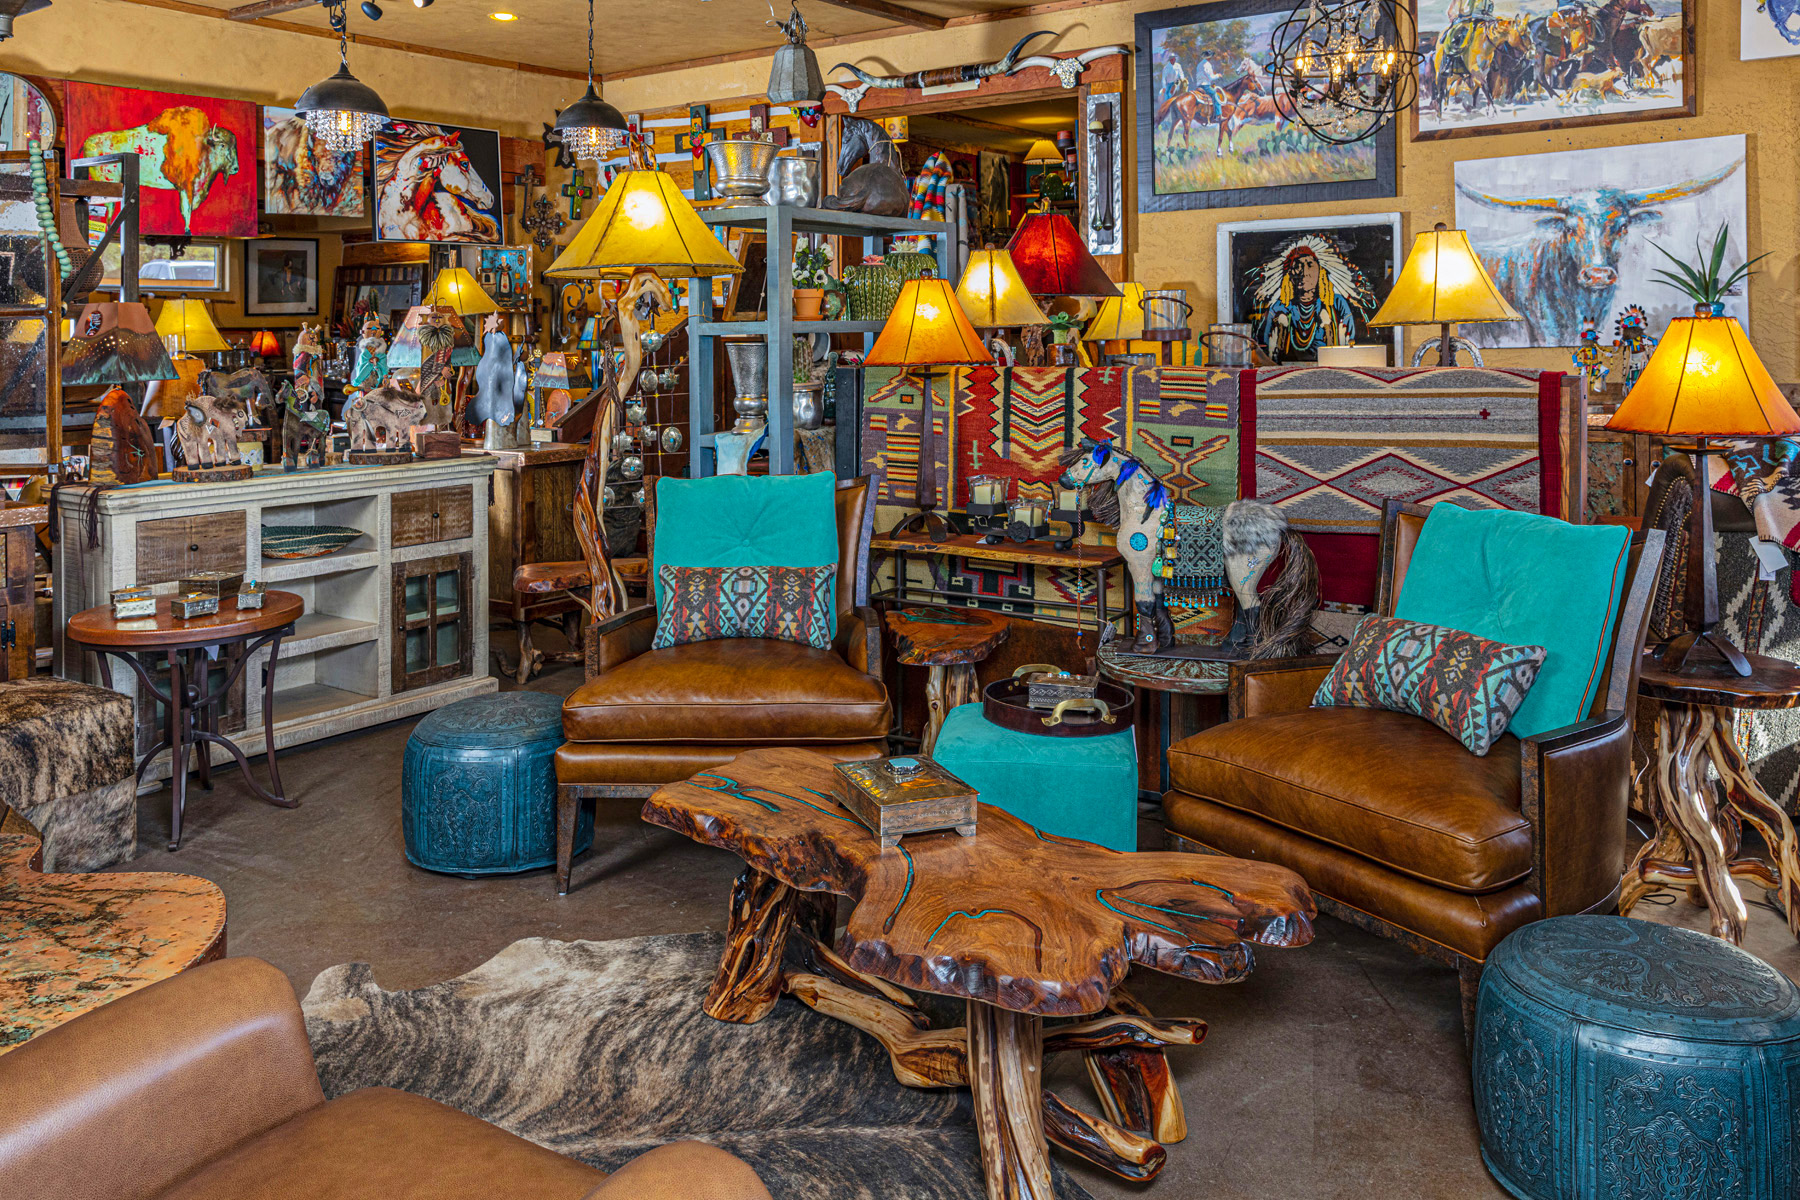 Rustic Turquoise and Wood Furniture Set